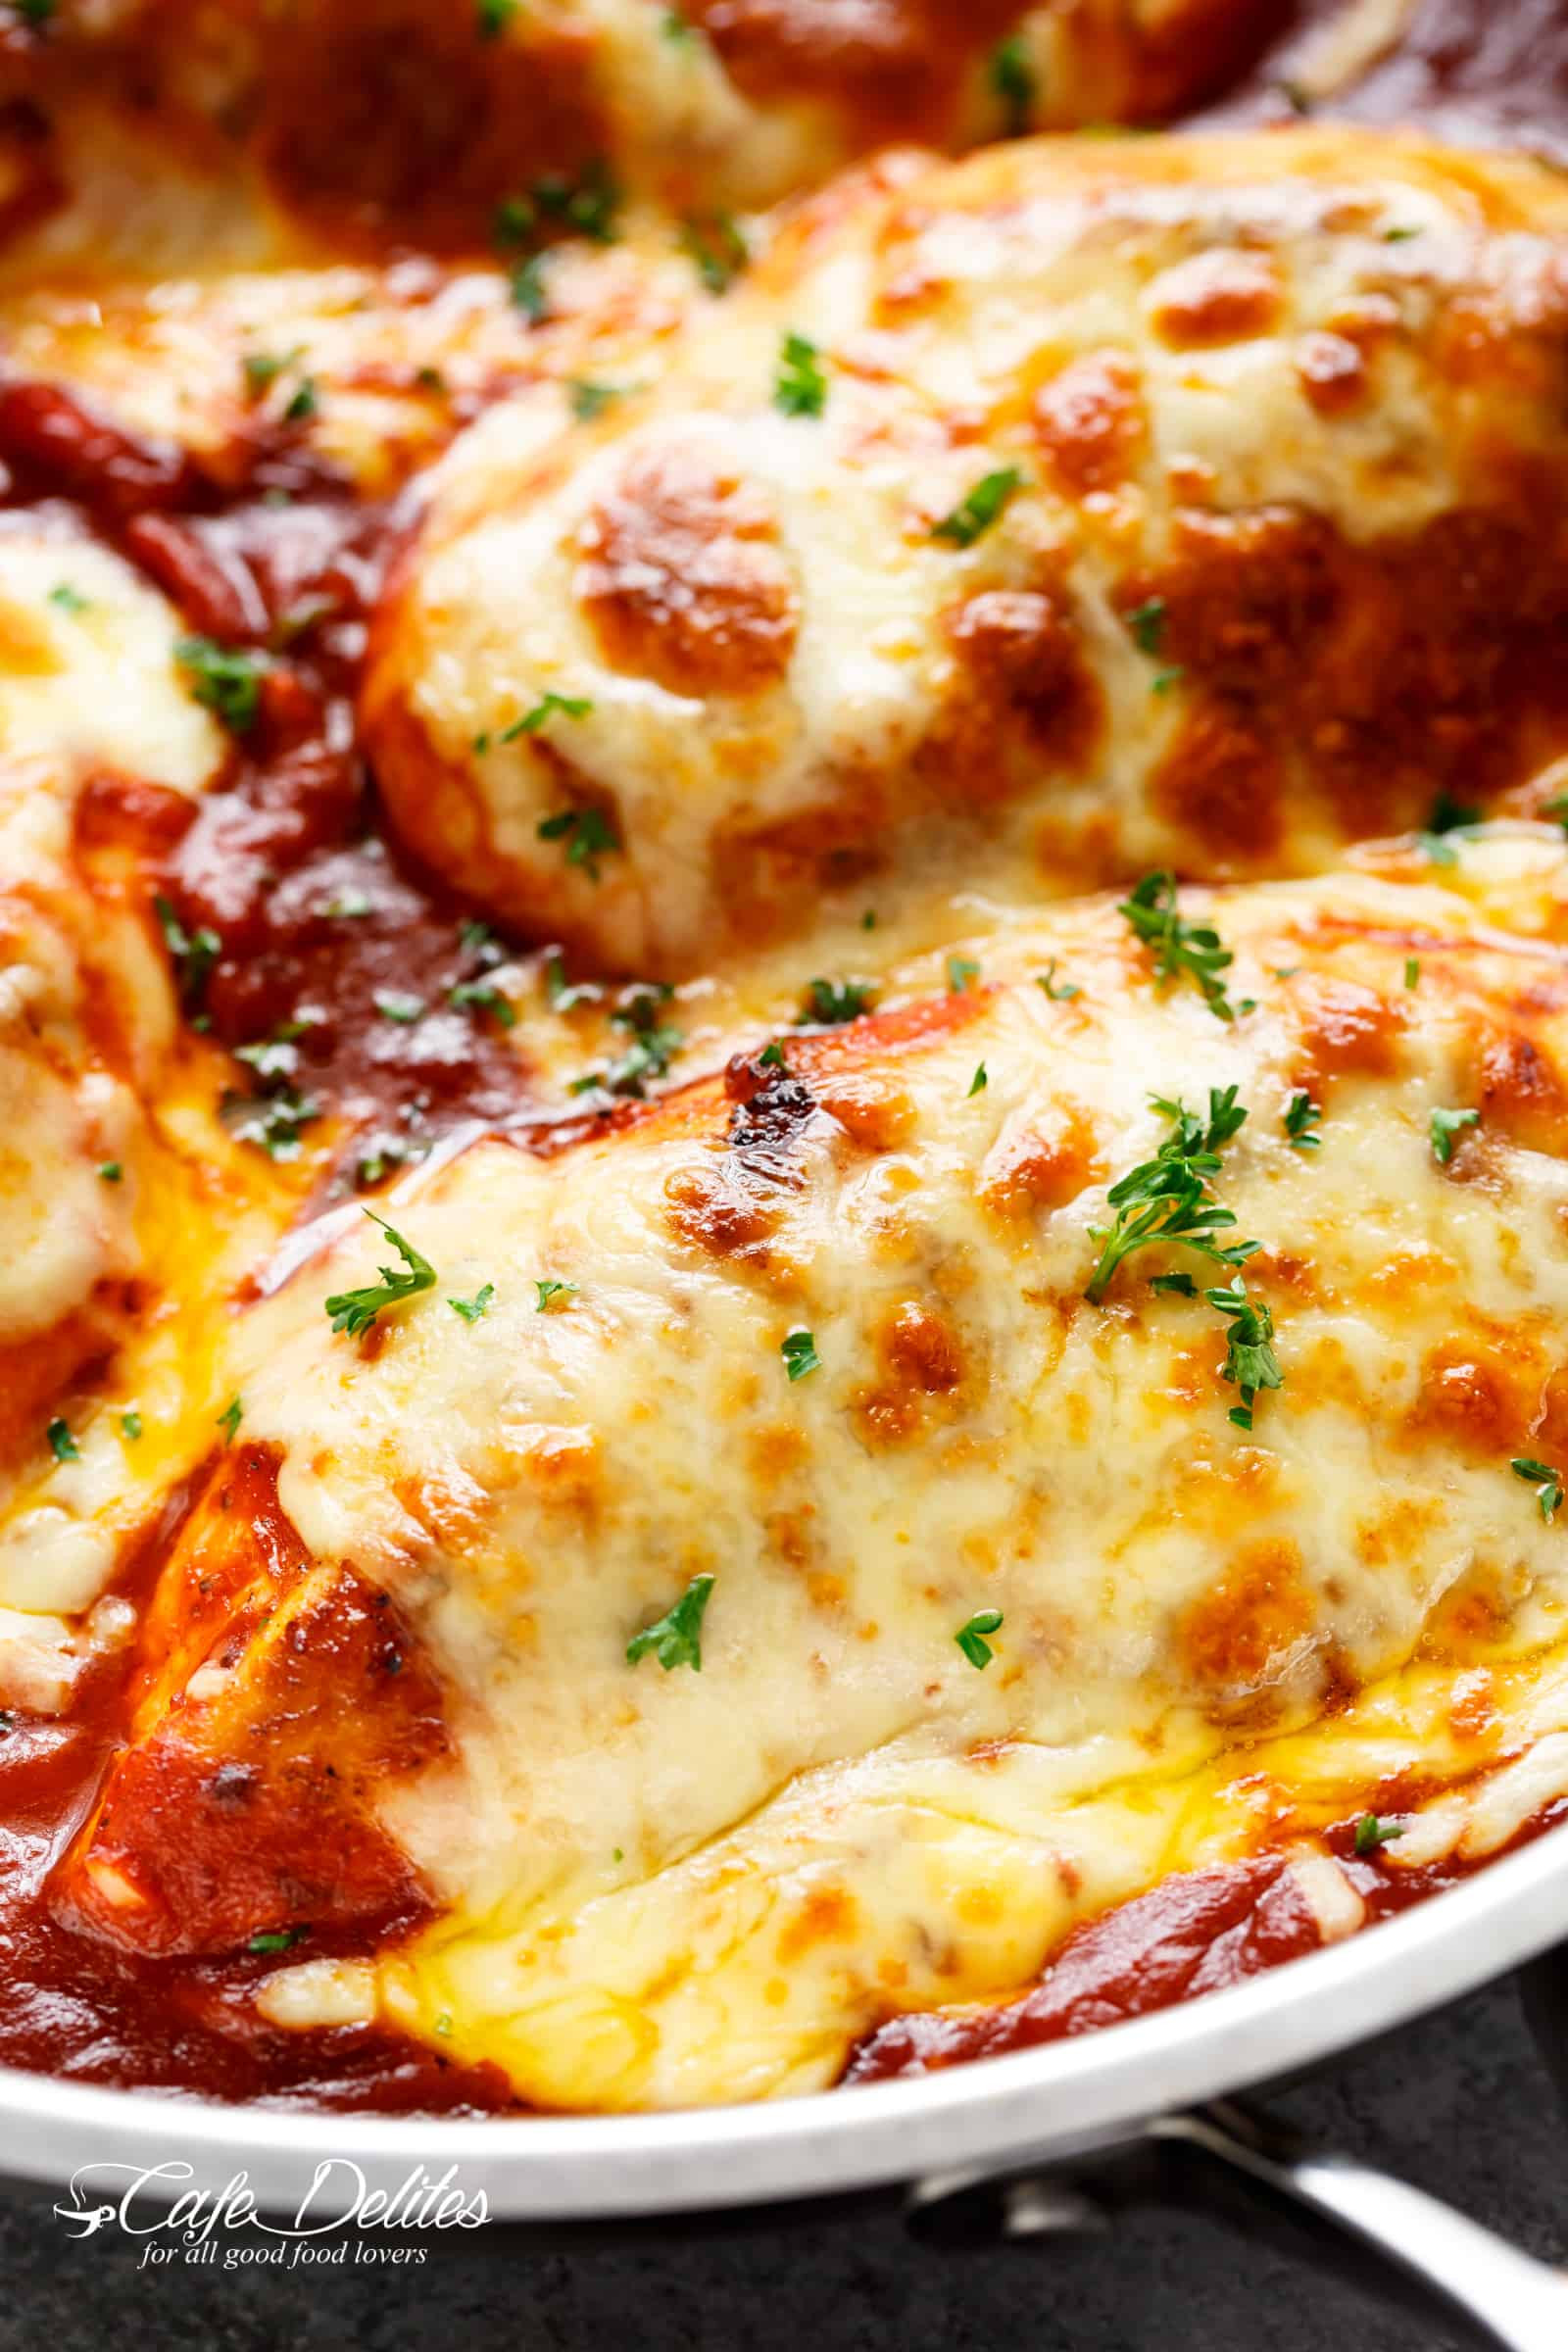 Low Carb Venison Recipes  Easy Mozzarella Chicken Recipe Low Carb Chicken Parm